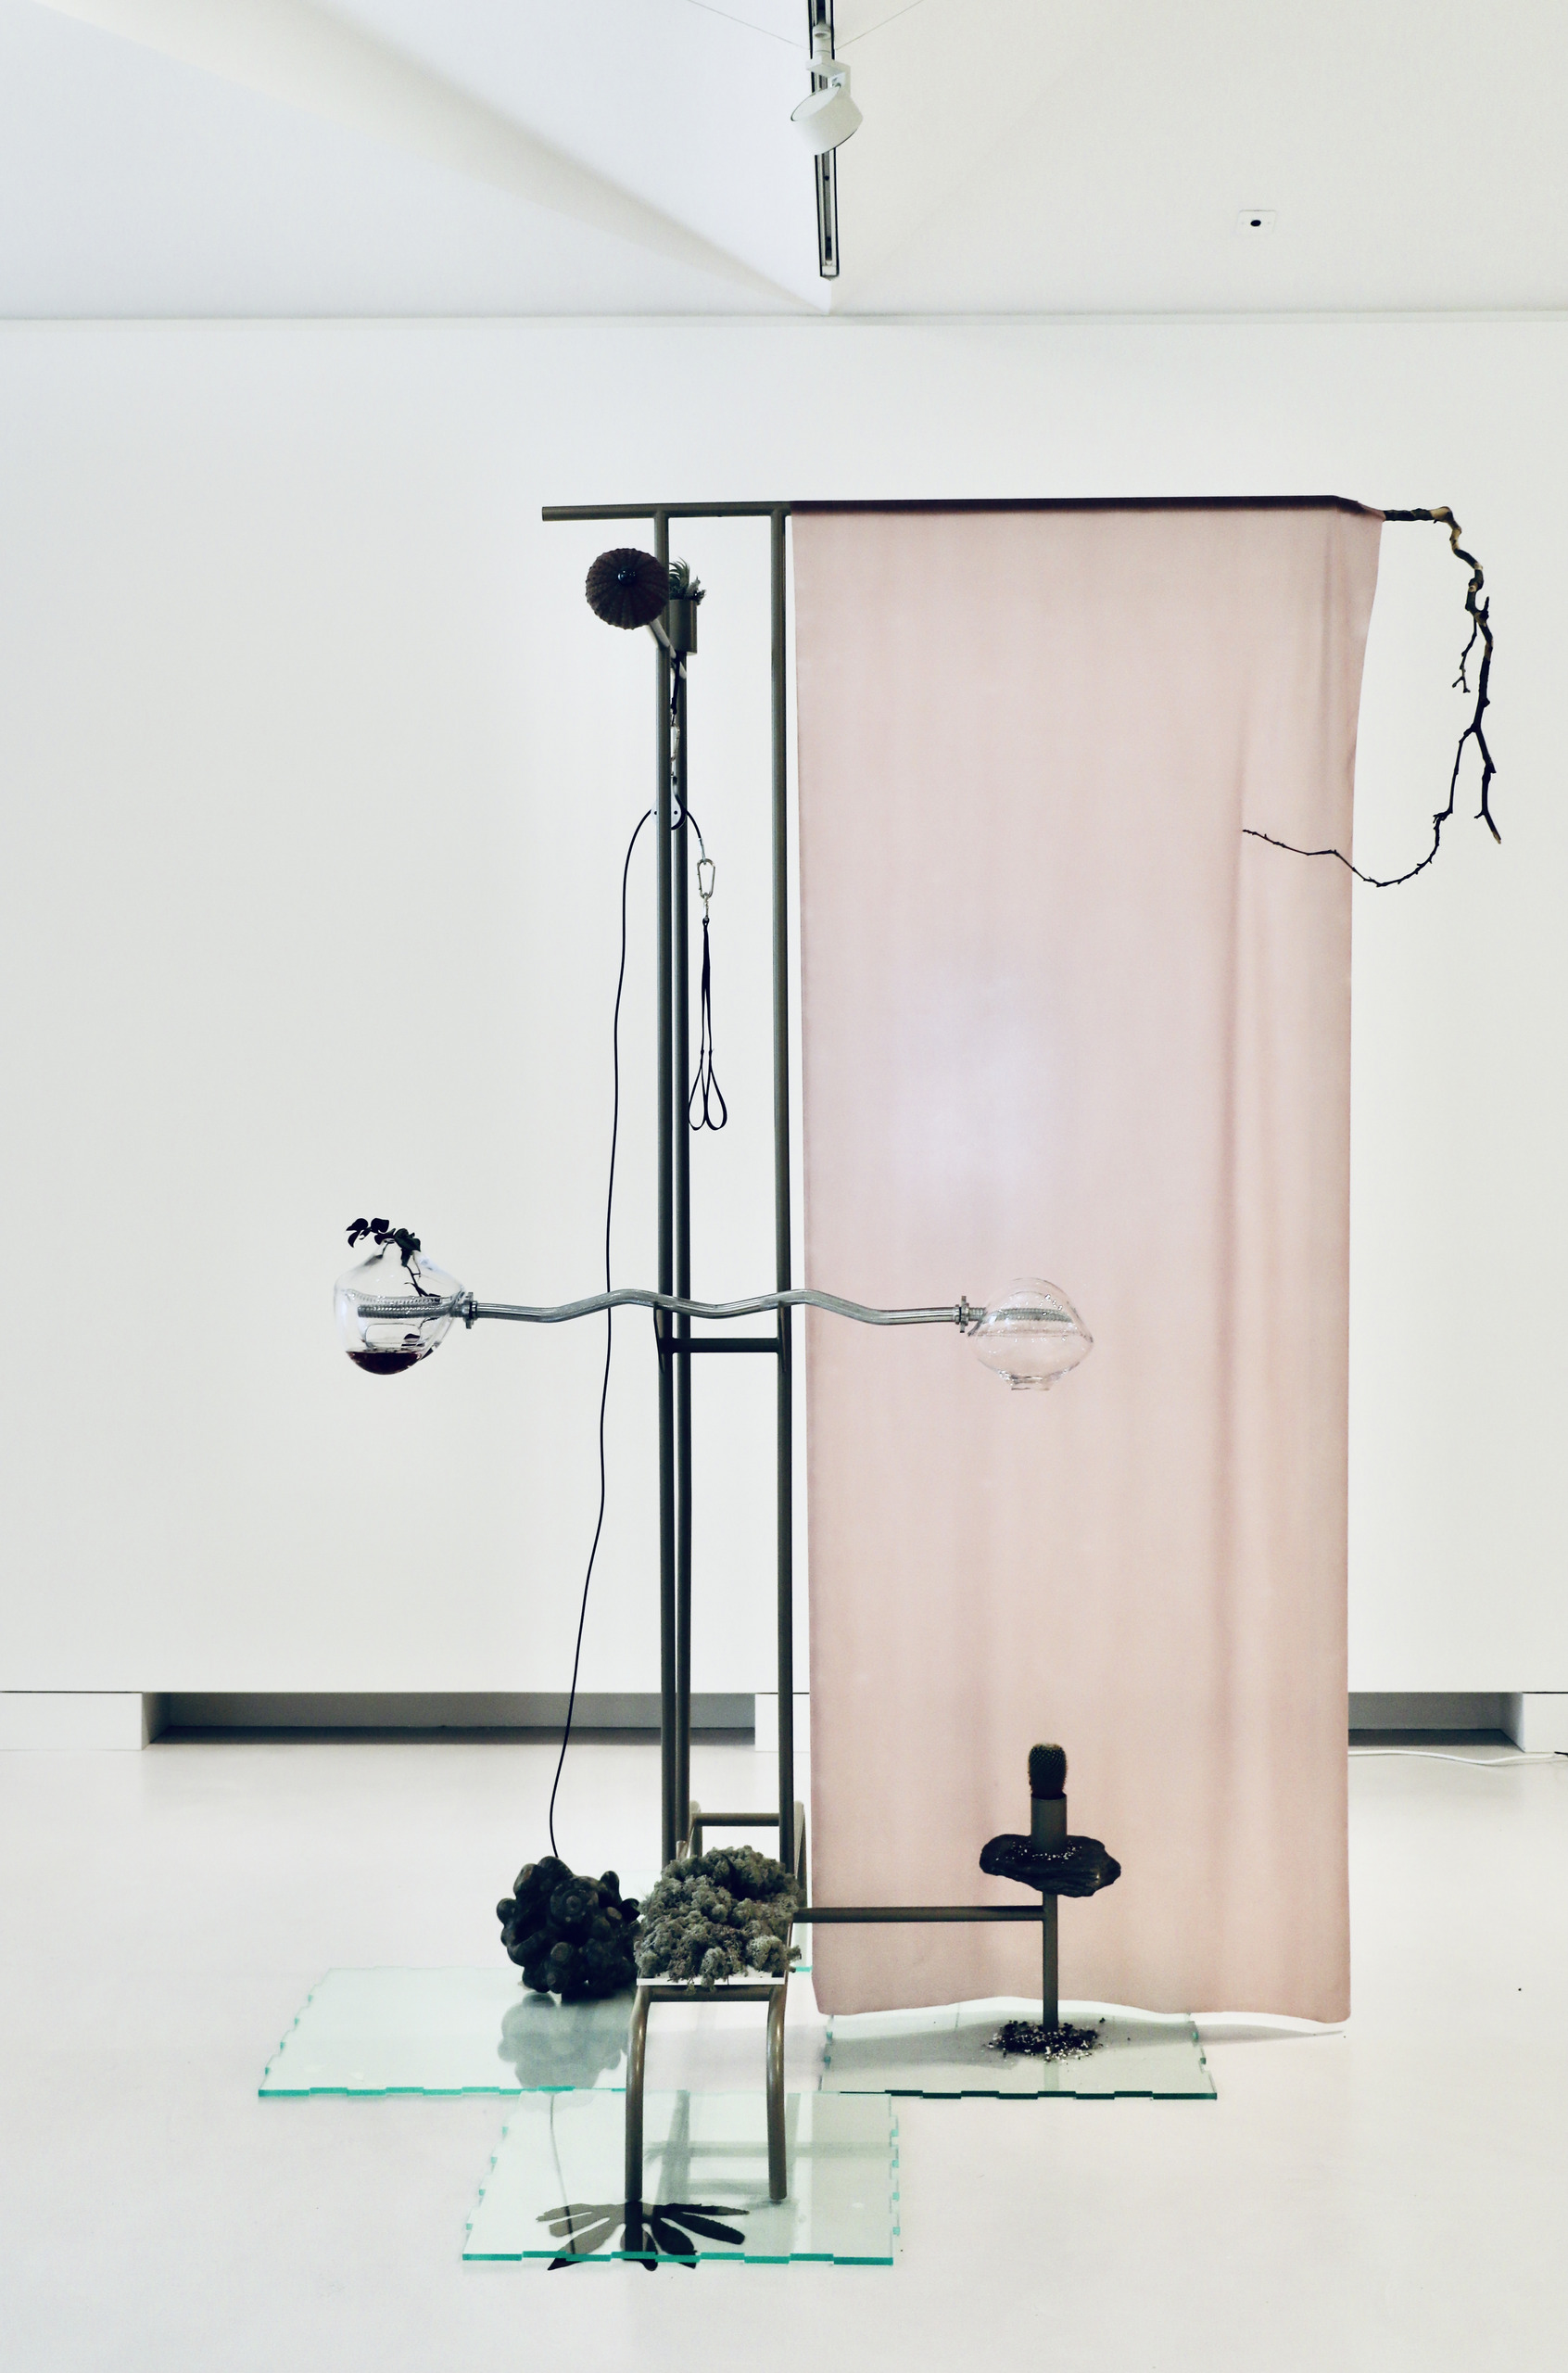 Exercise of Entangled Empathy, 2021  Glass, water, algae, plants, soil, fossil rock, bell bar, pulley system, latex, tree branch, powder coated stainless steel.  267x140x180cm